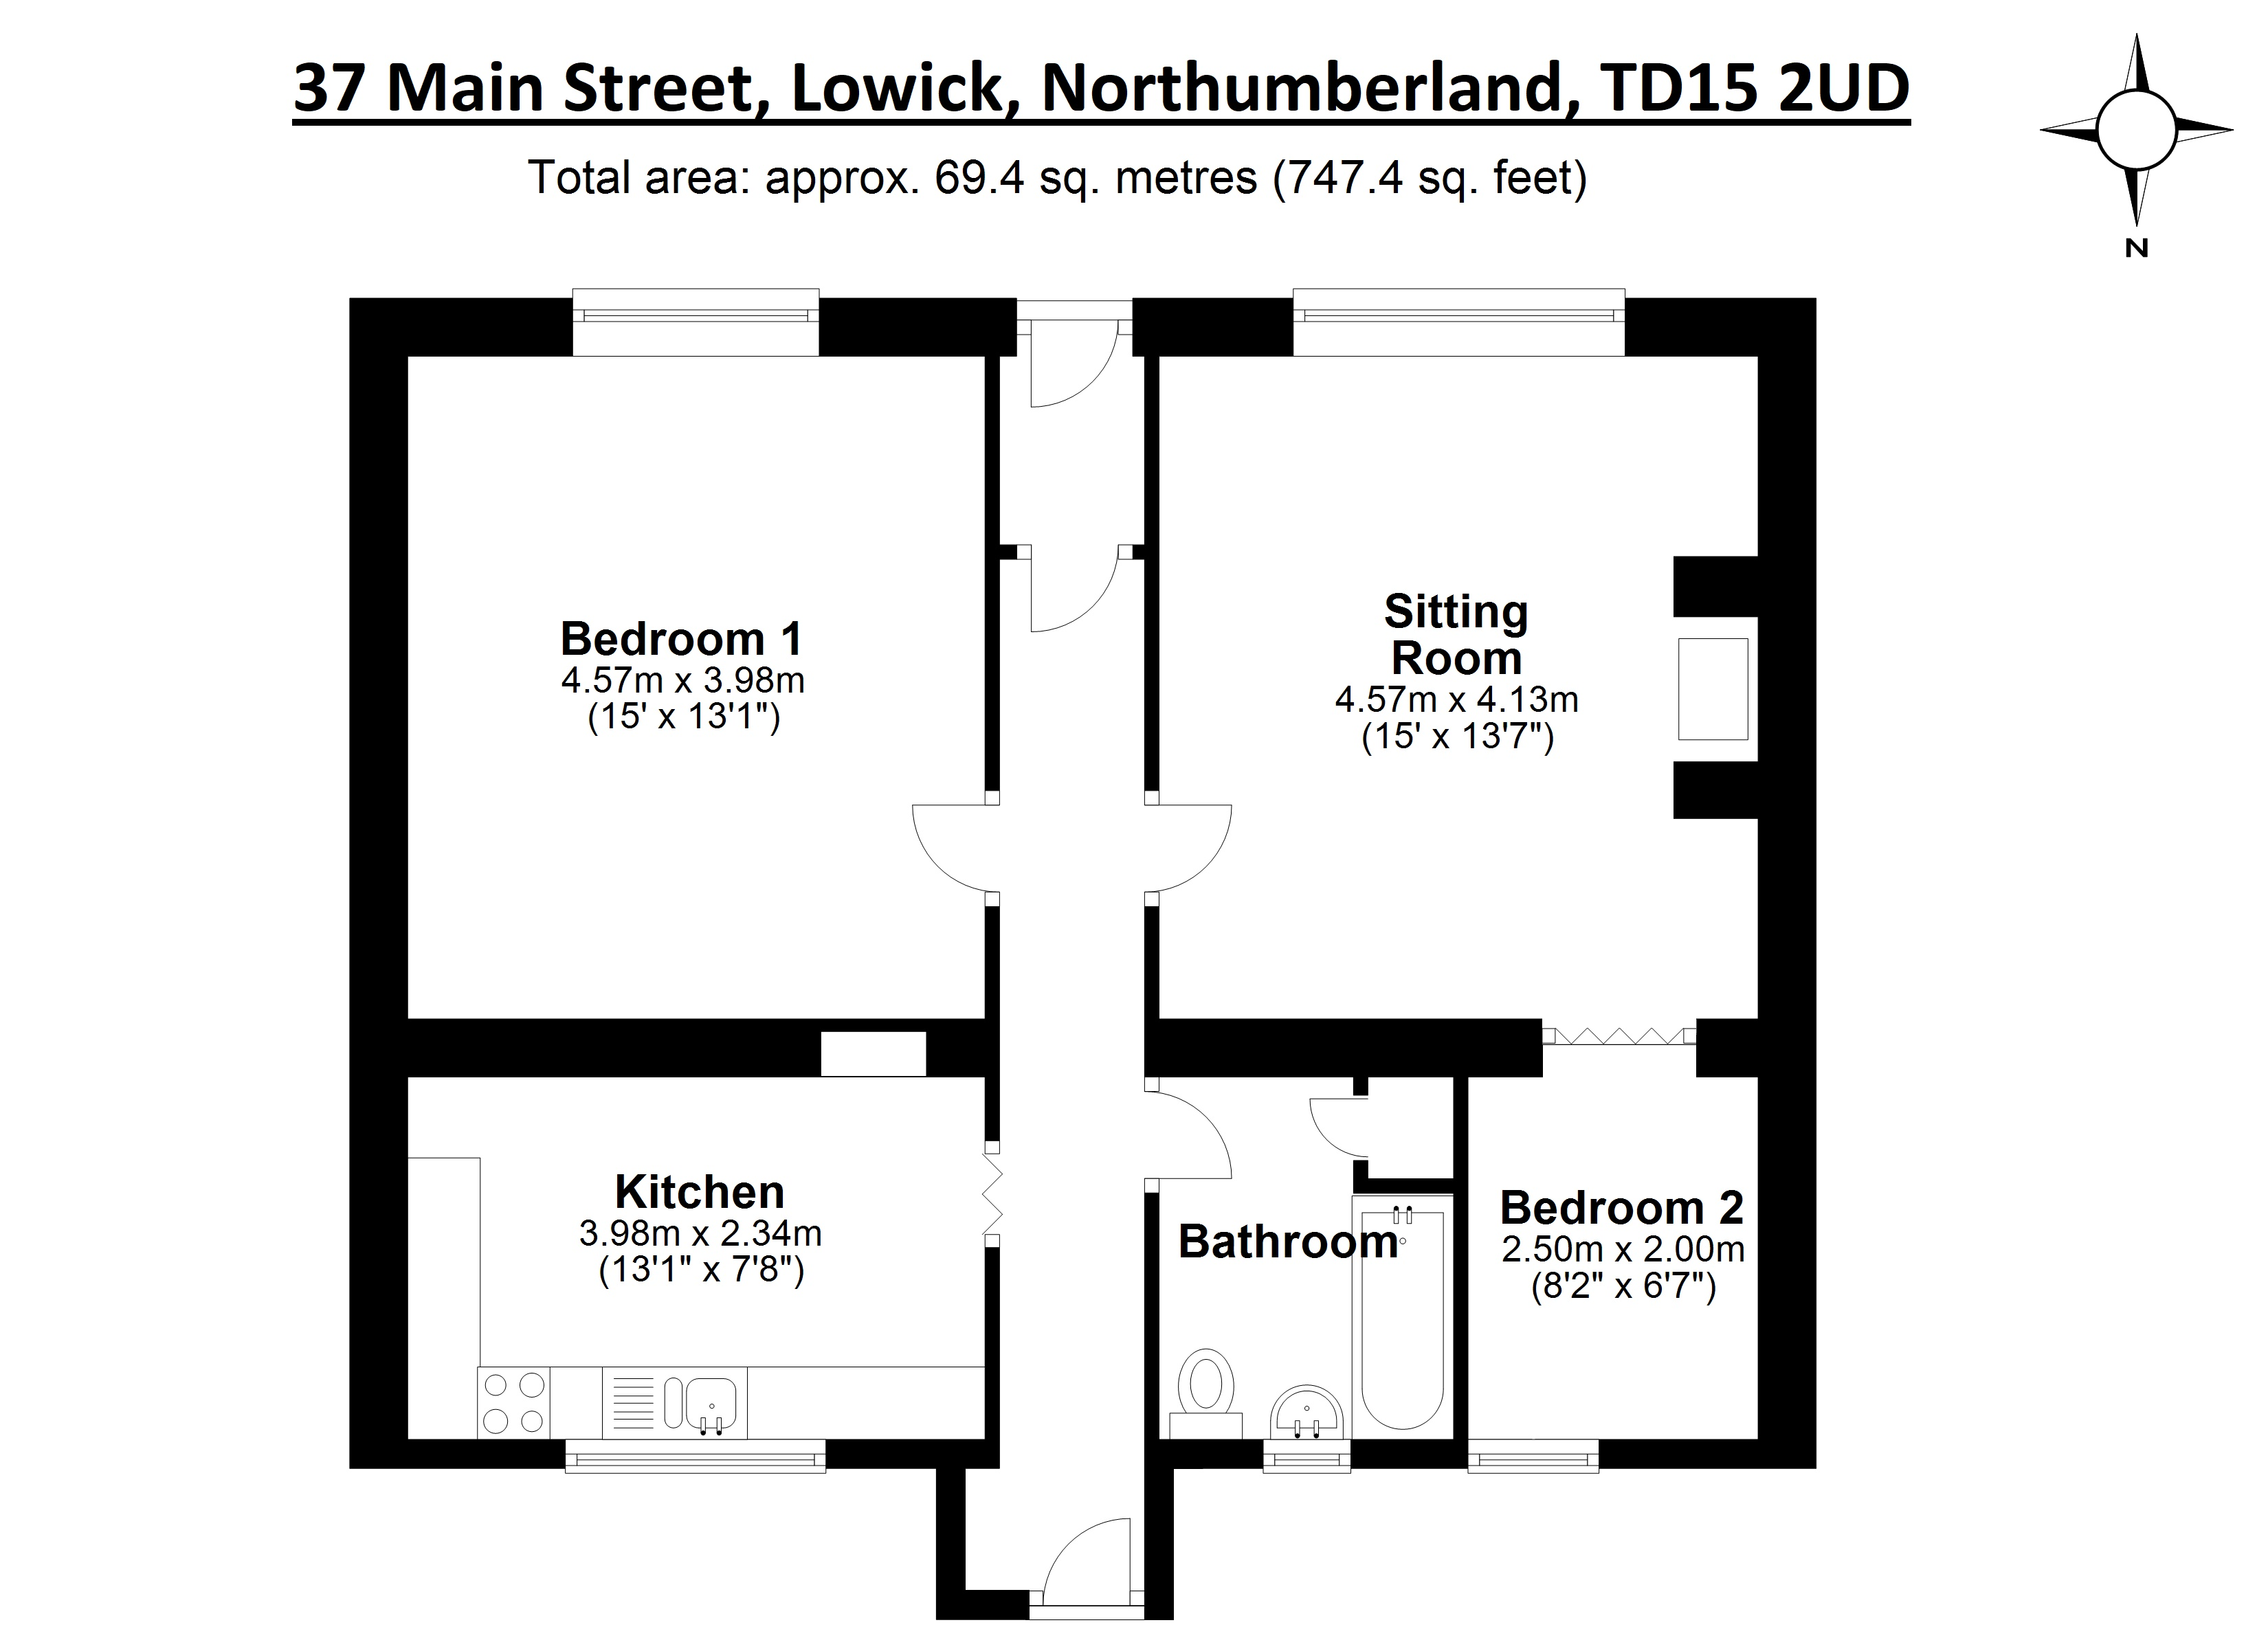 Floorplans for Main Street, Lowick, Northumberland, TD15